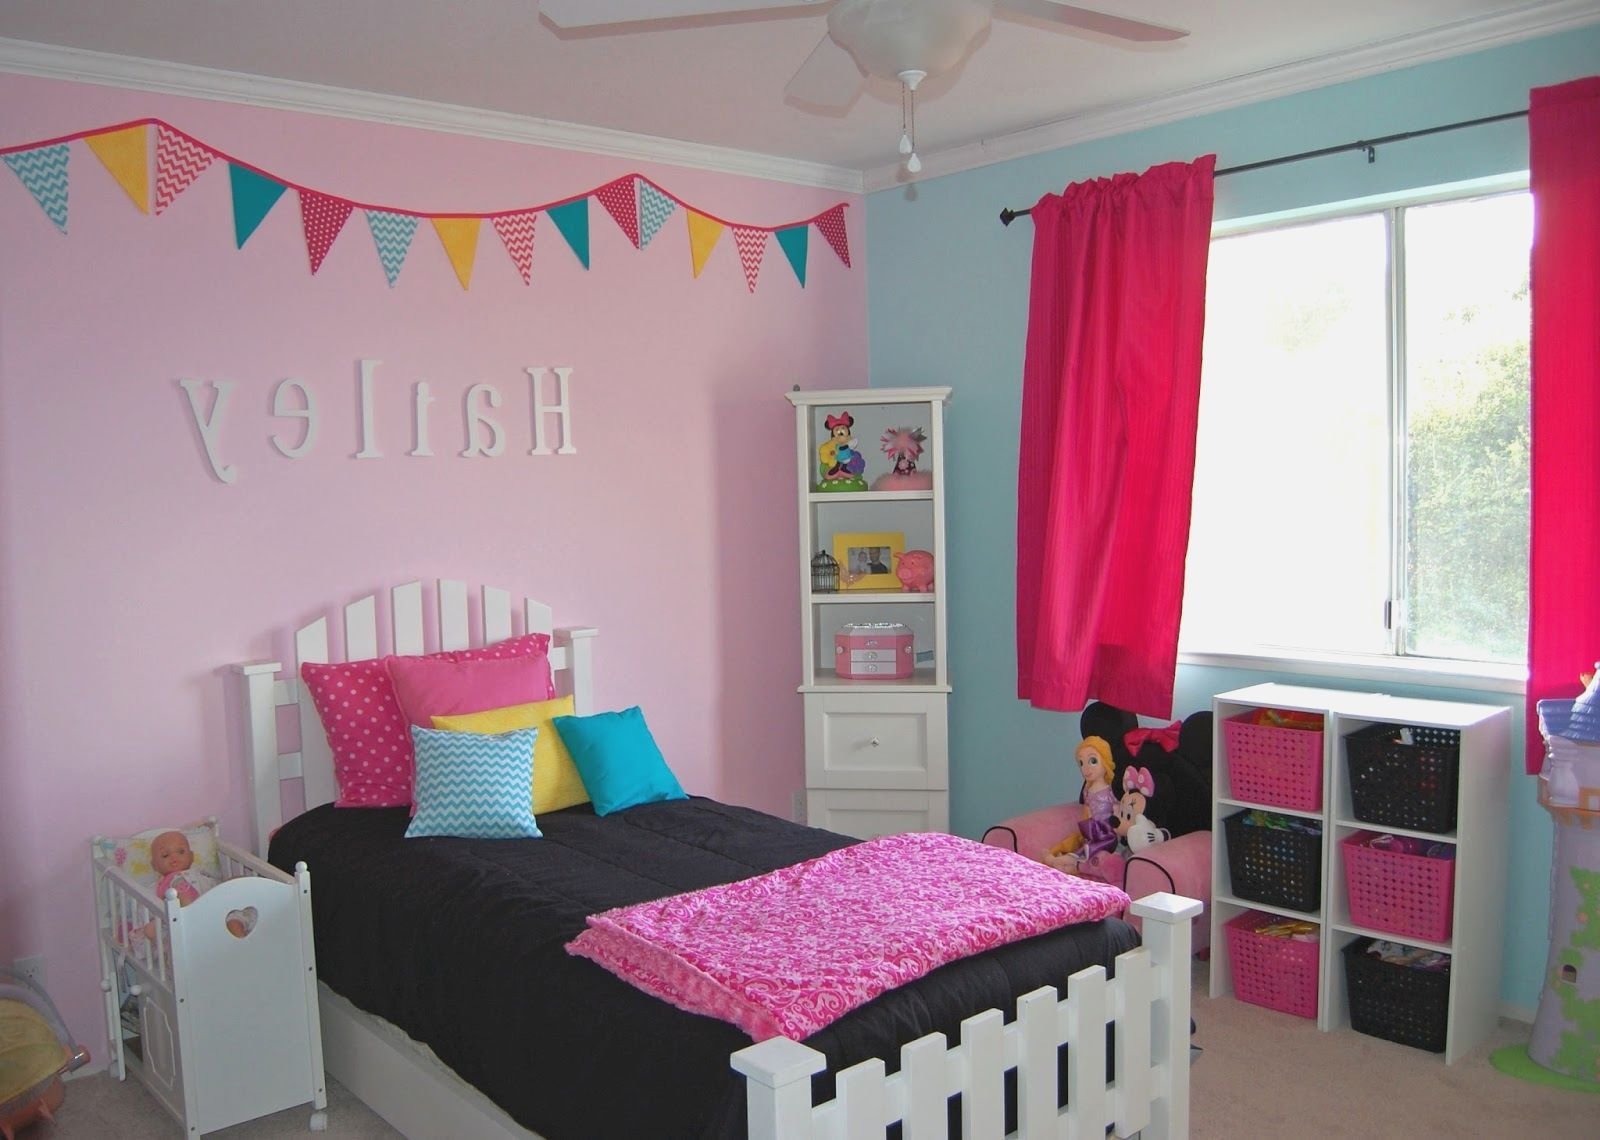 Bedroom ideas for 10 yr old girl more picture bedroom for 7 year old bedroom ideas